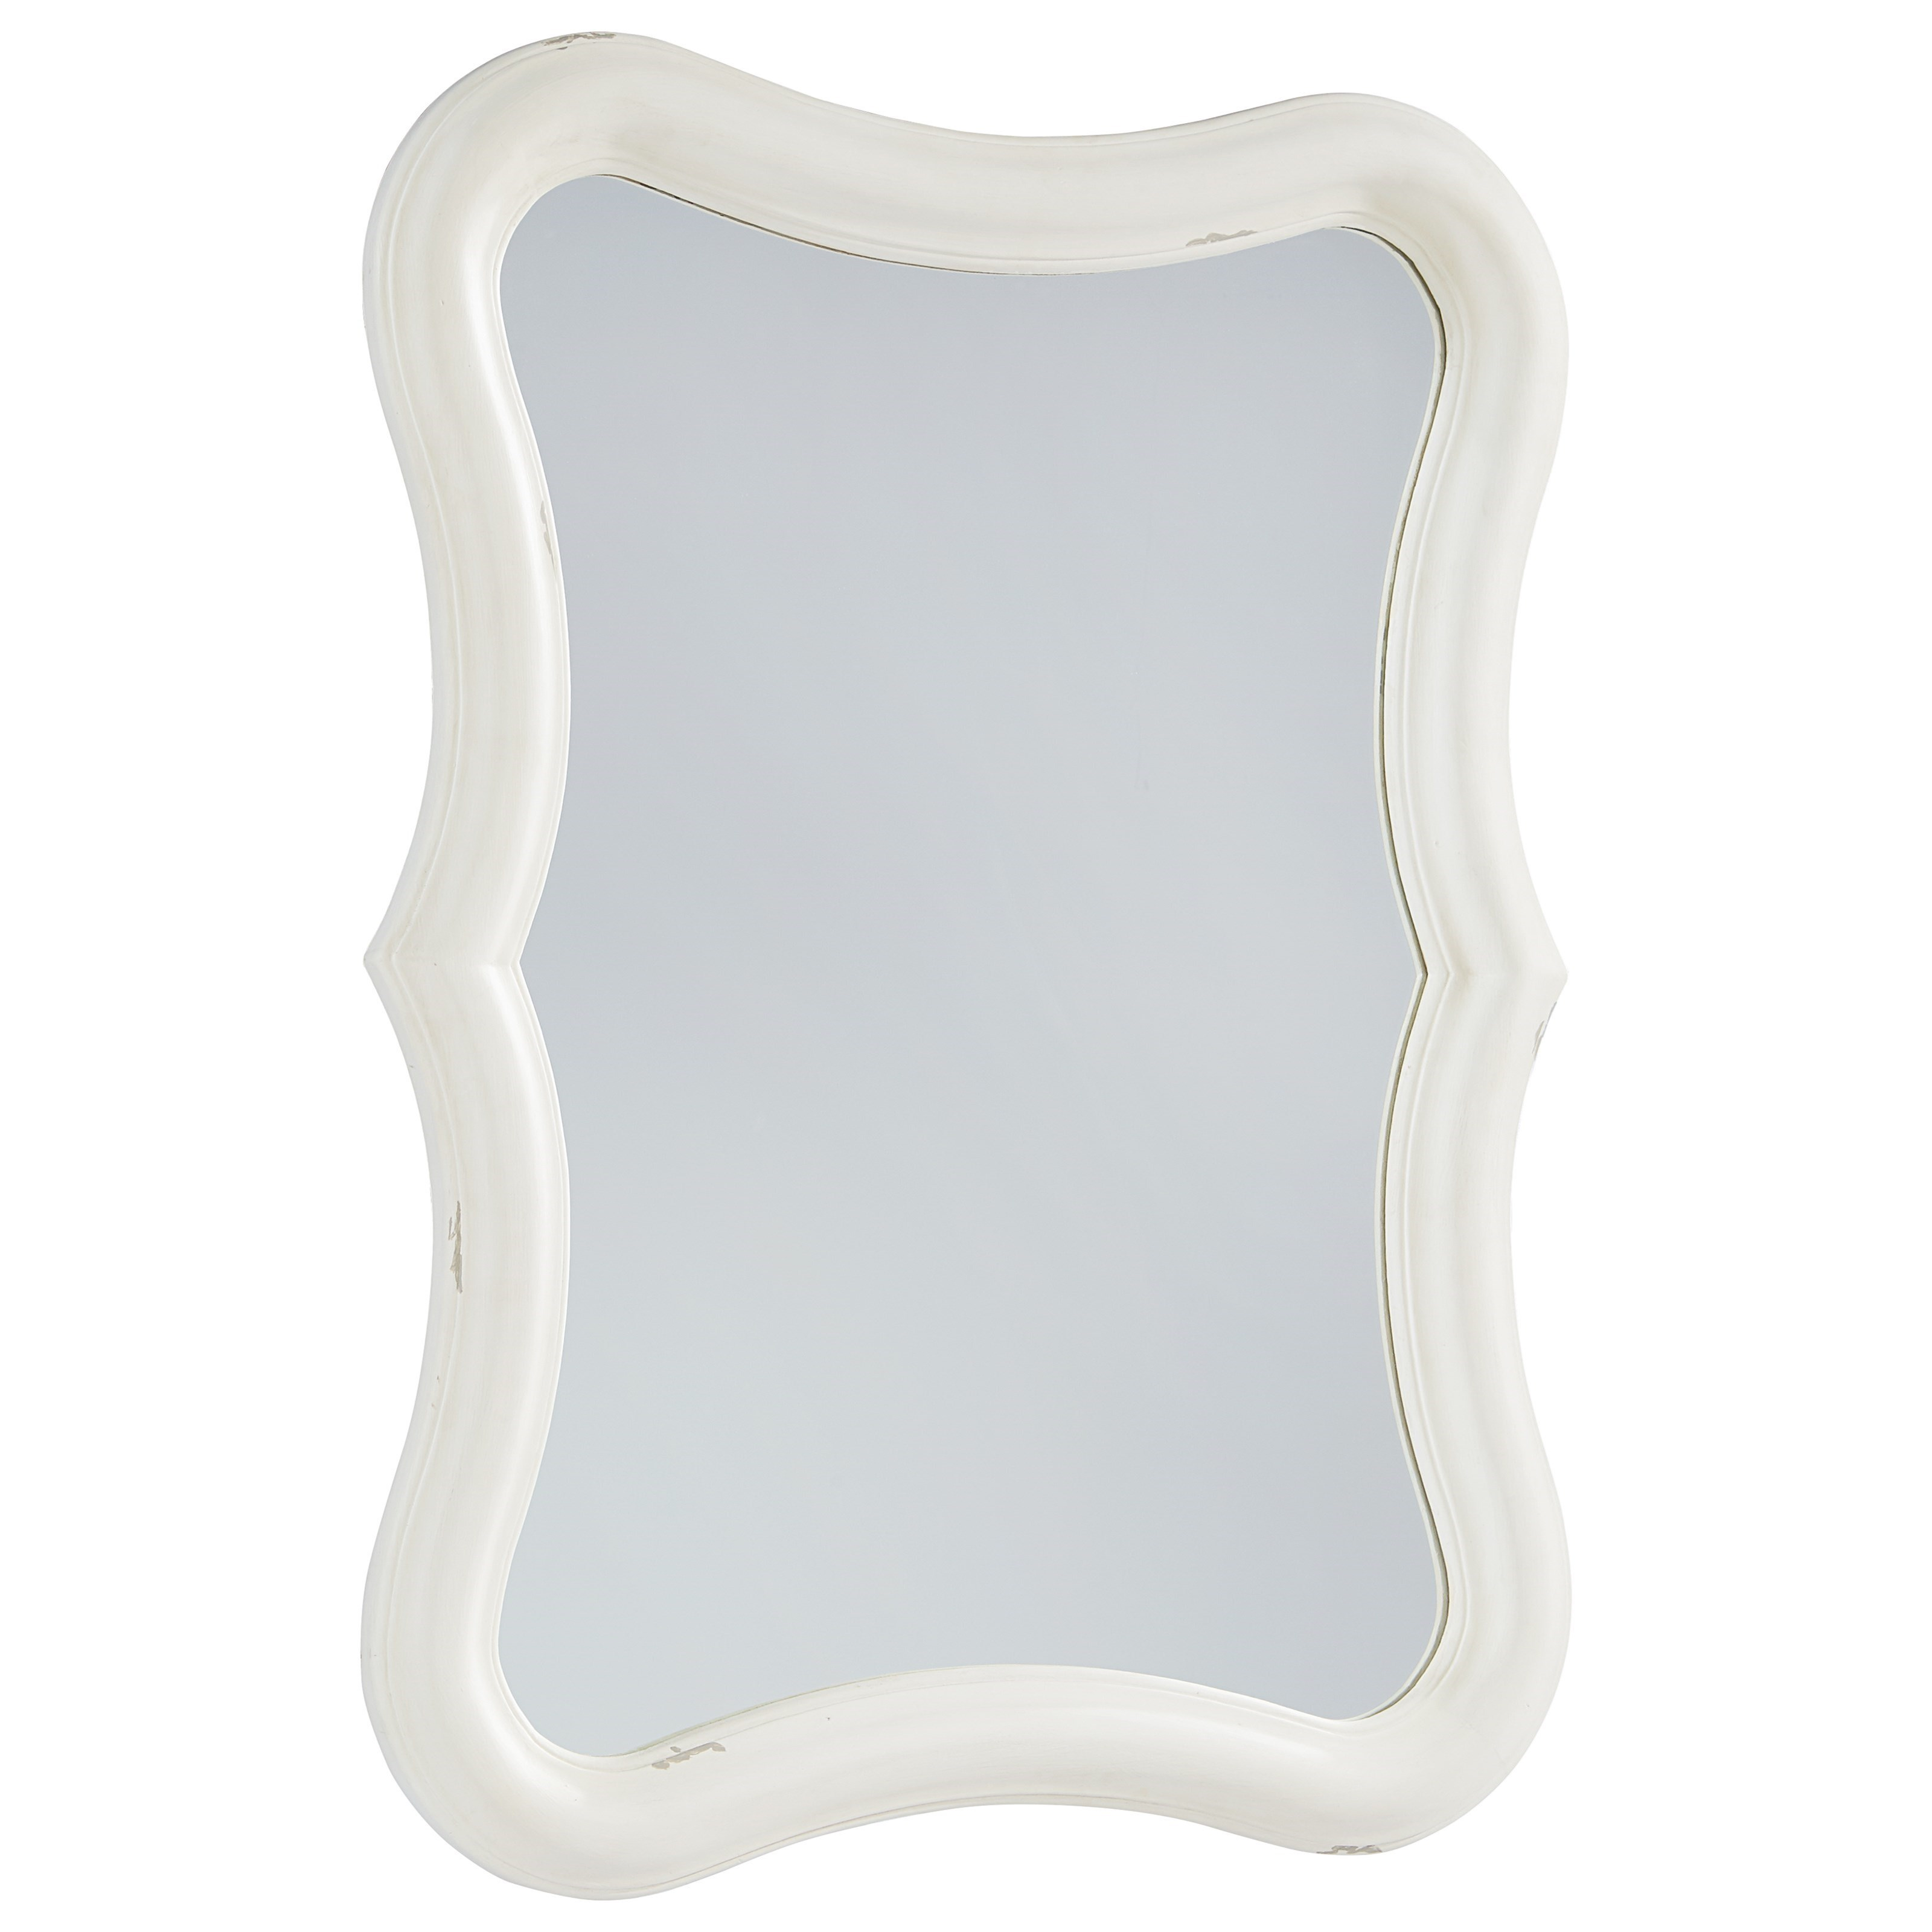 Magnolia Home by Joanna Gaines French Inspired Silhouette Mirror - Jo's White - Item Number: 3070108B